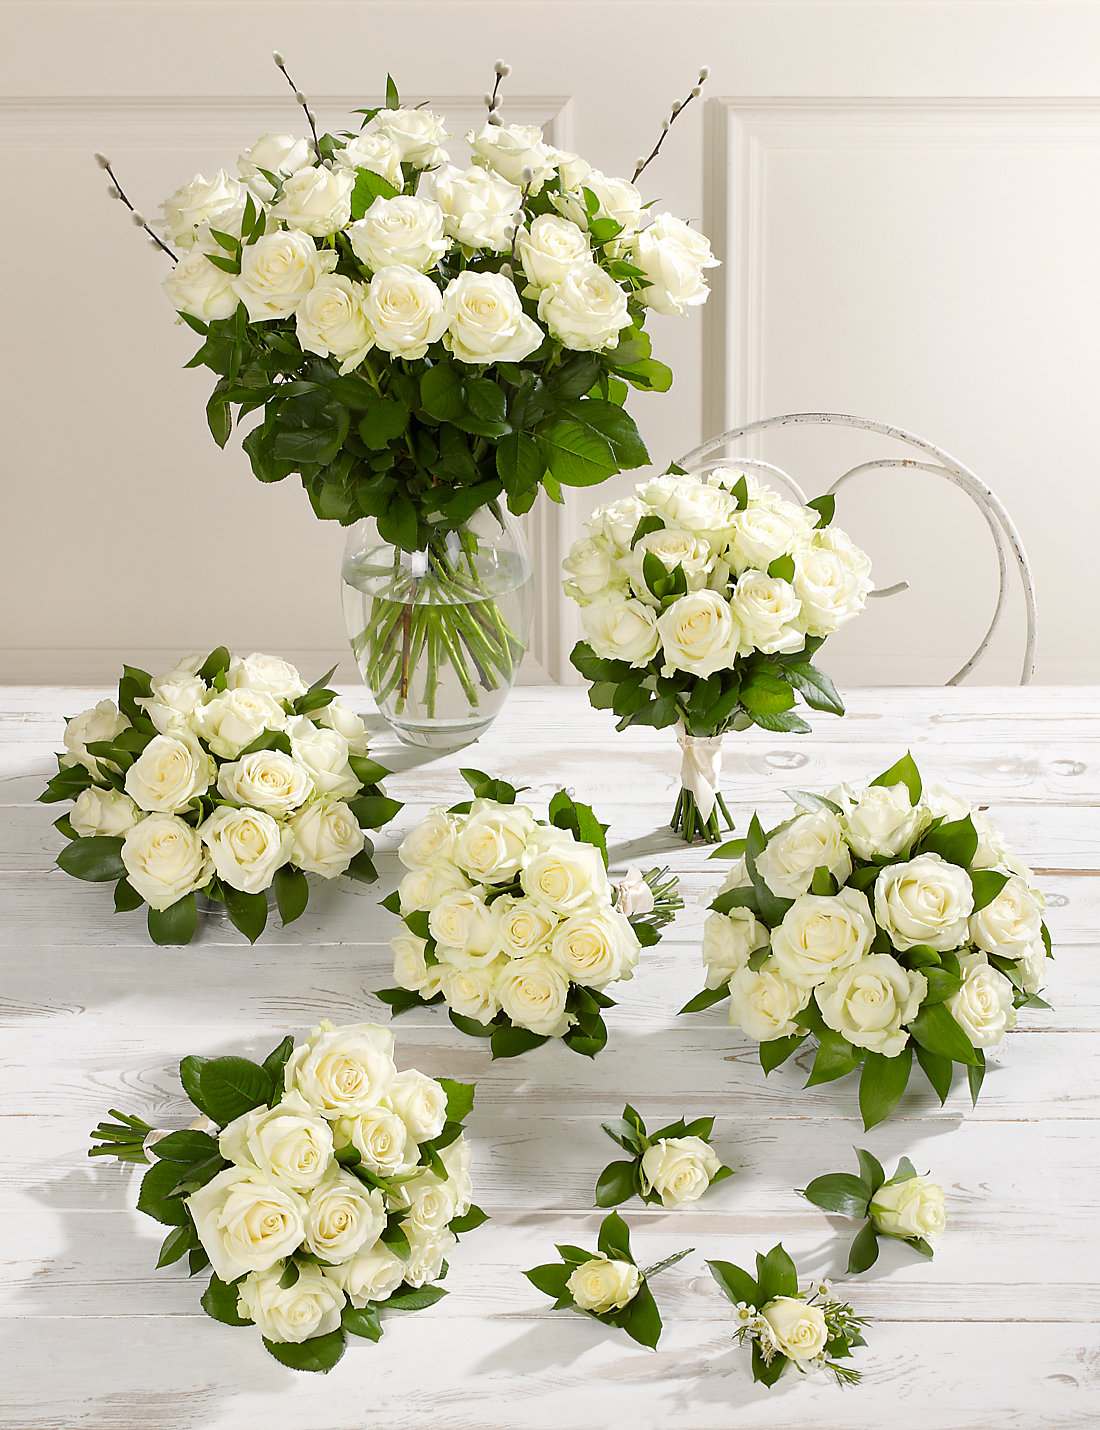 creamywhite luxury rose wedding flowers  collection   ms, Beautiful flower